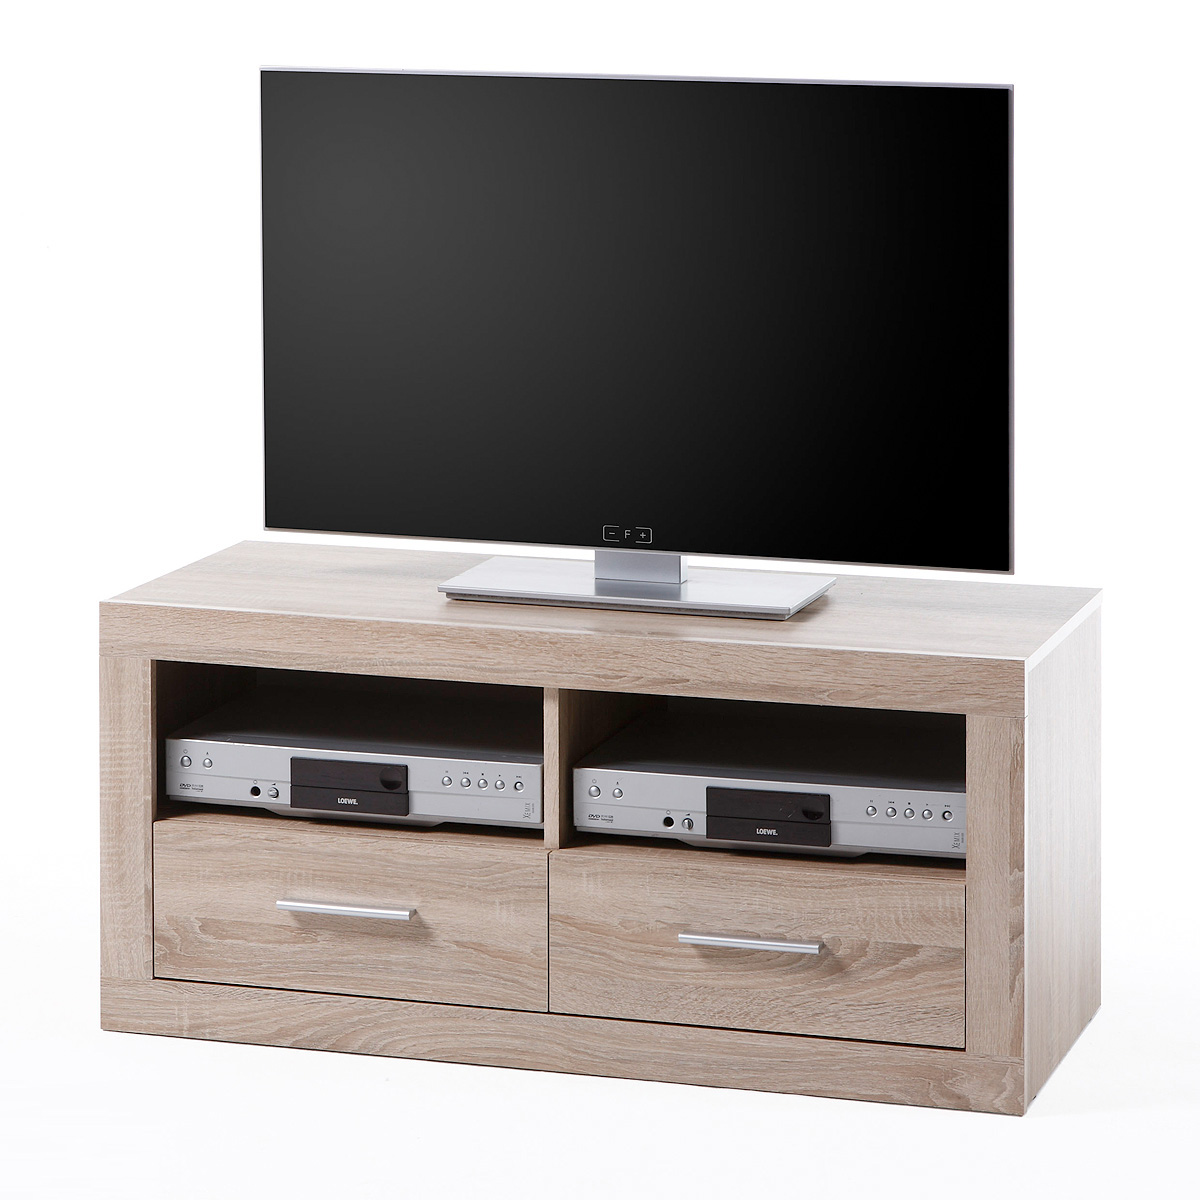 lowboard cancan 5 tv board tv kommode sonoma eiche s gerau. Black Bedroom Furniture Sets. Home Design Ideas